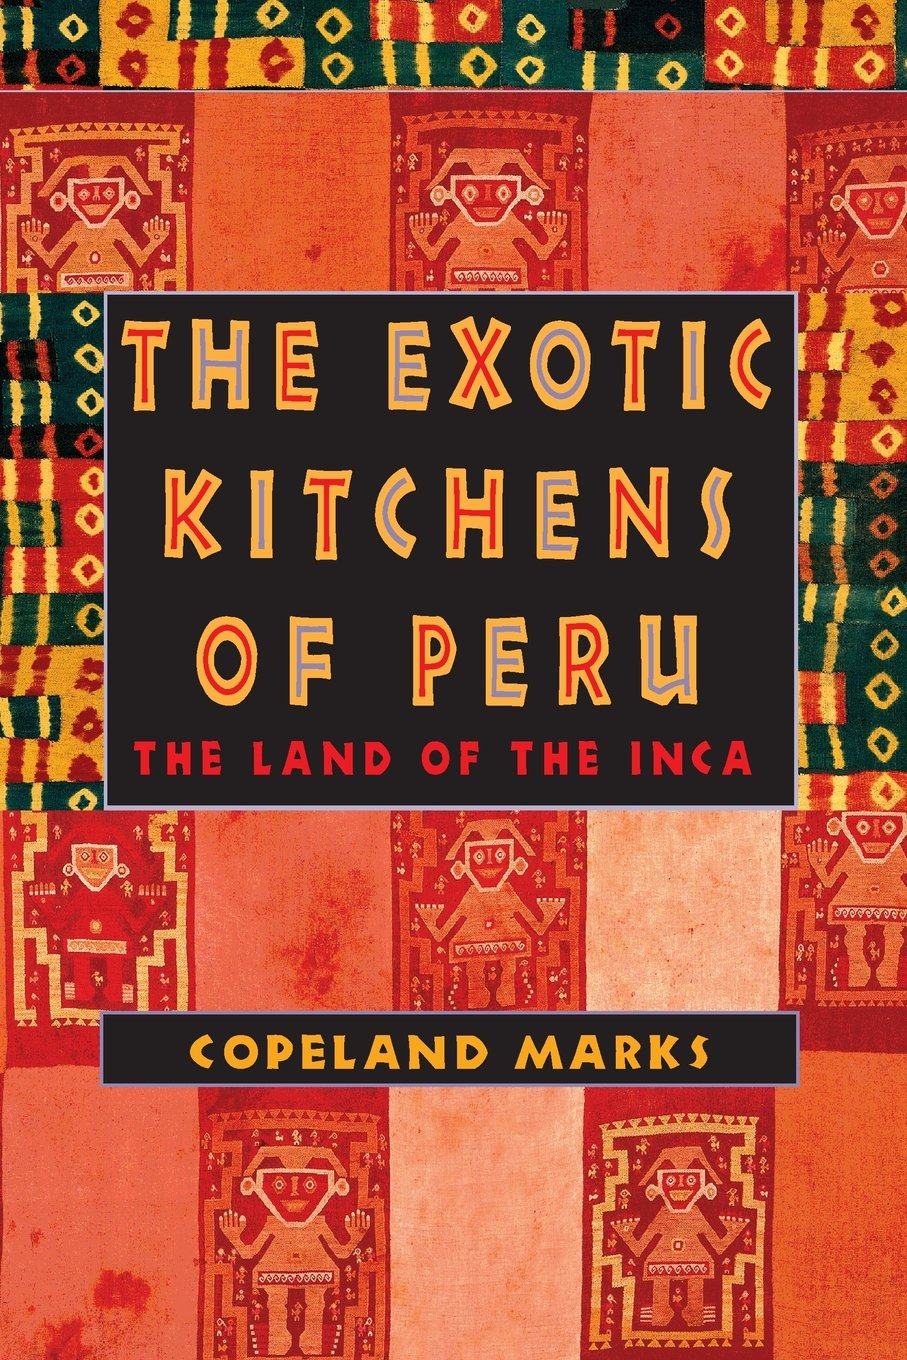 The Exotic Kitchen of Peru